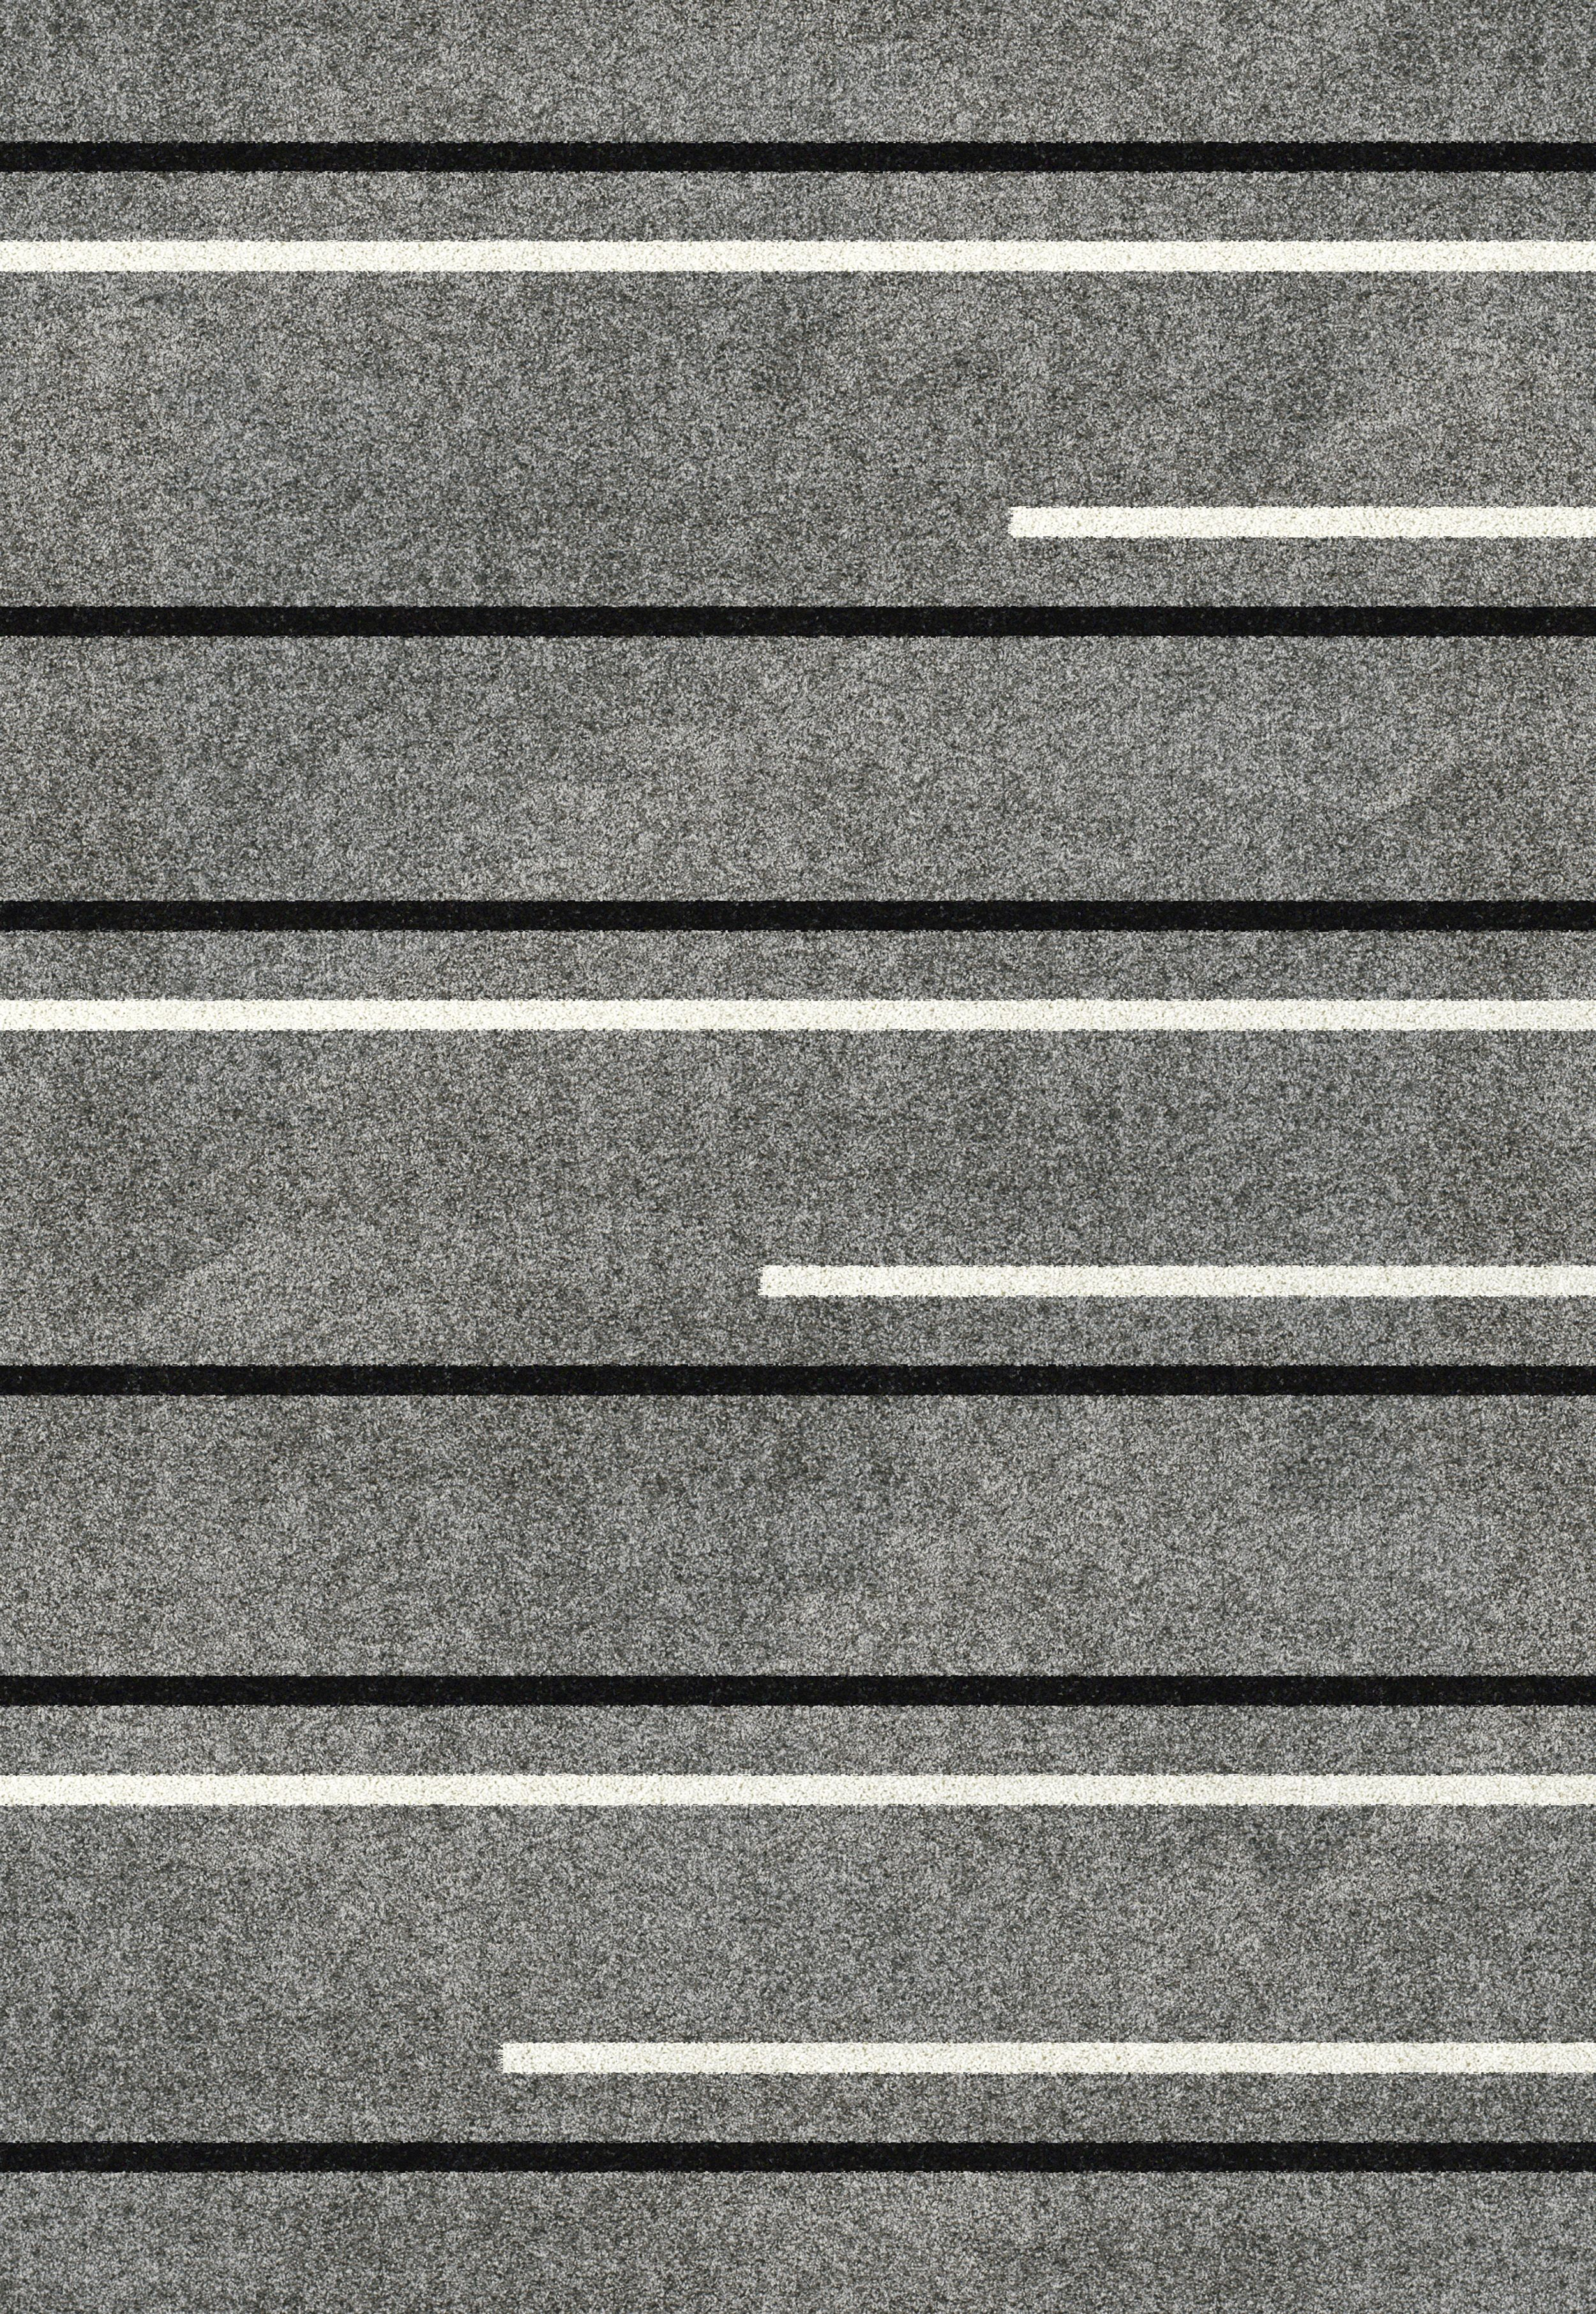 This Grey Area Rug Features A Striped Design In White And Black The Stripes Carry Across Entire Length Of Where As Are